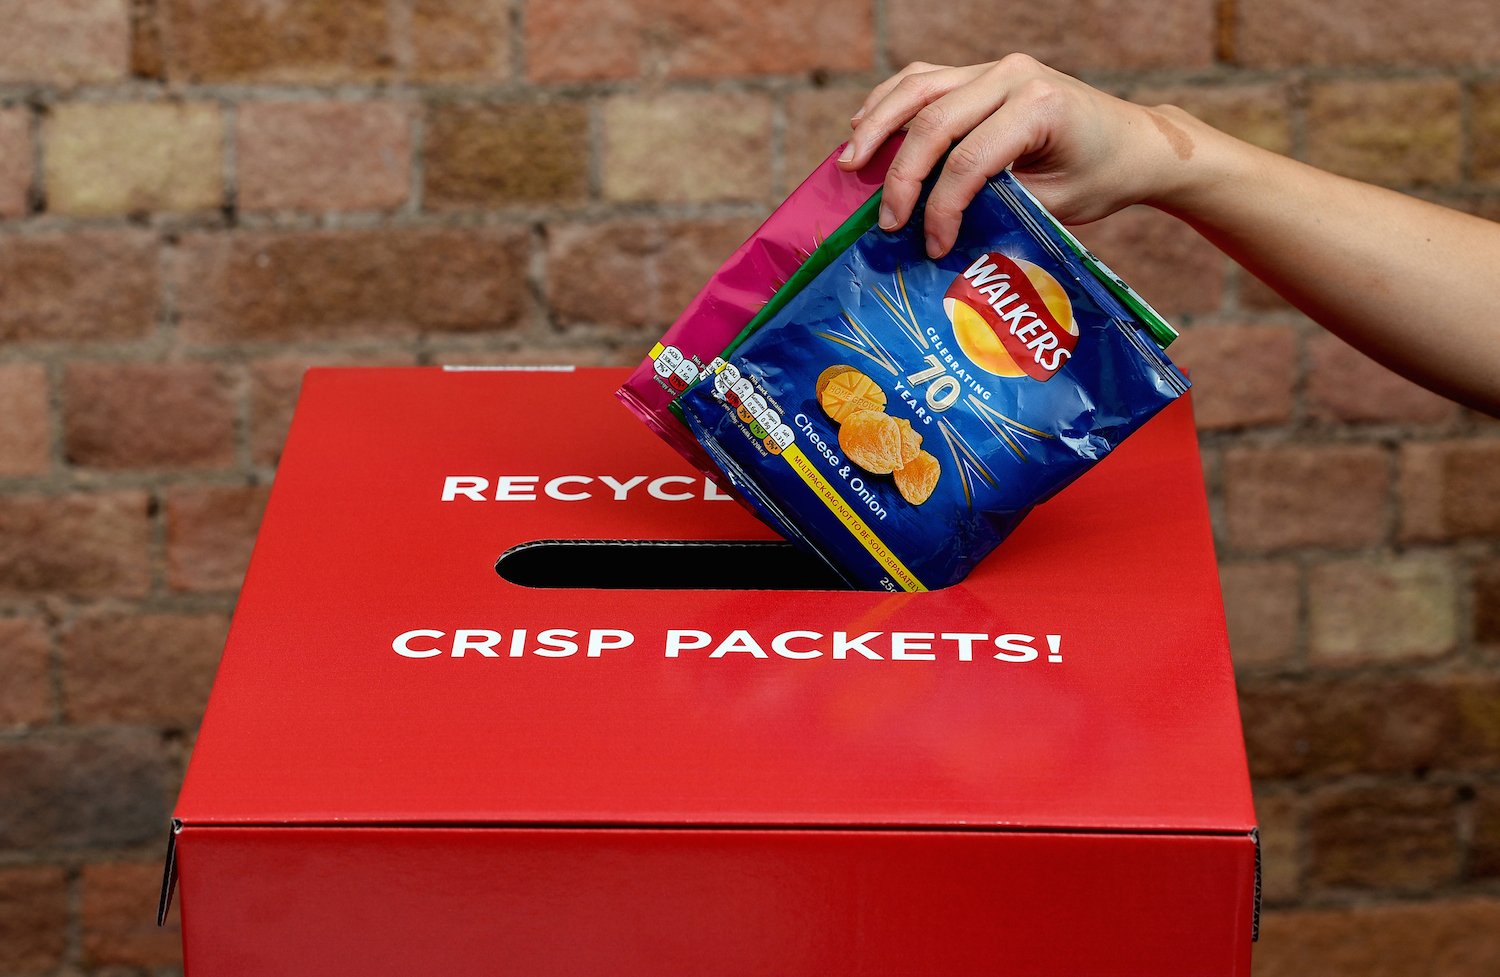 Half a million packets returned since launch of Walkers recycling scheme